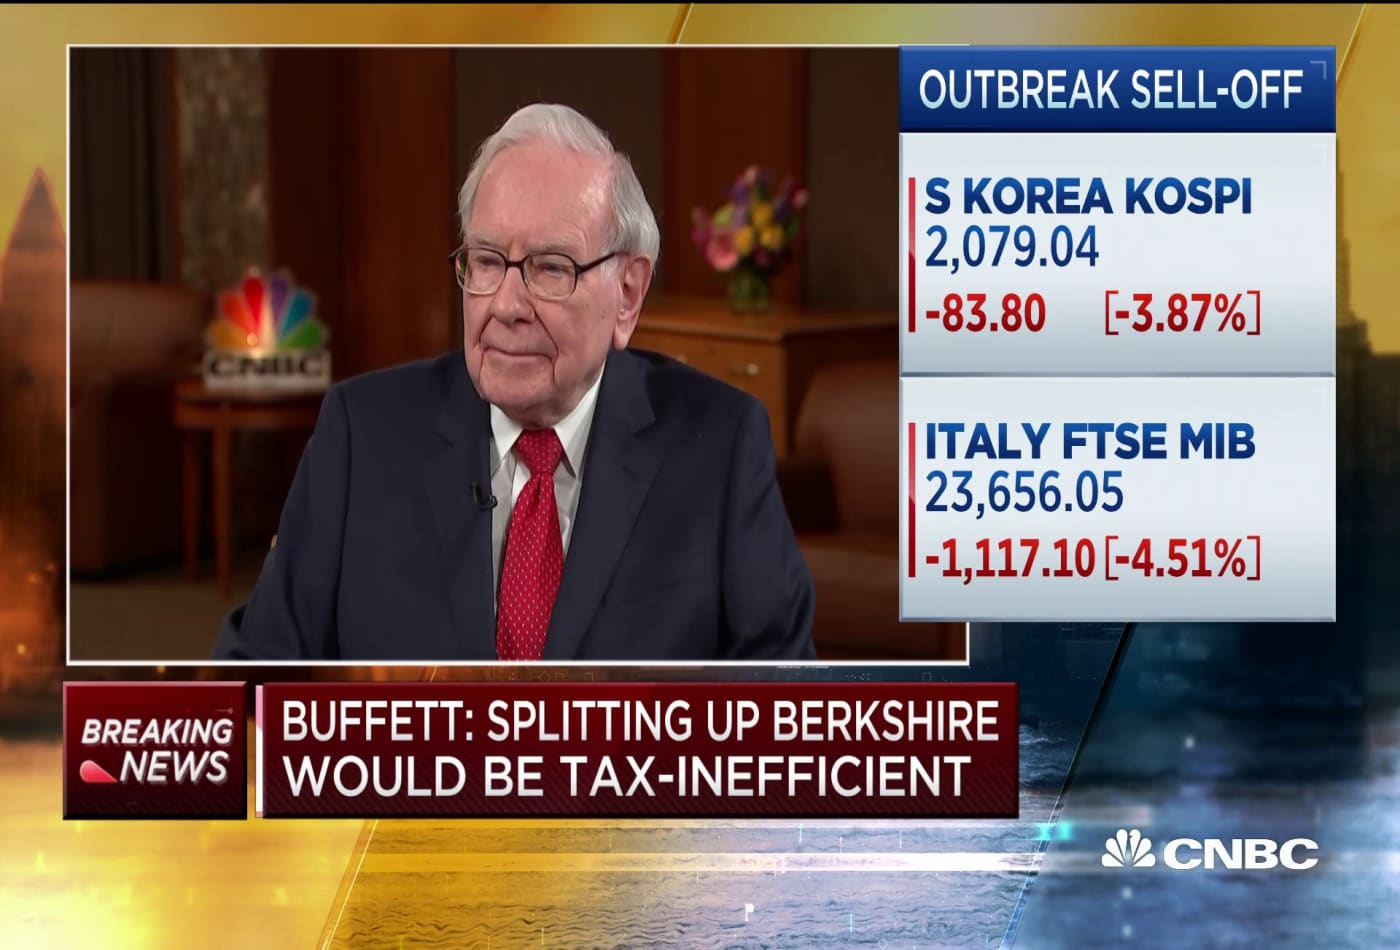 Warren Buffett: There would not be a profit if Berkshire were split up